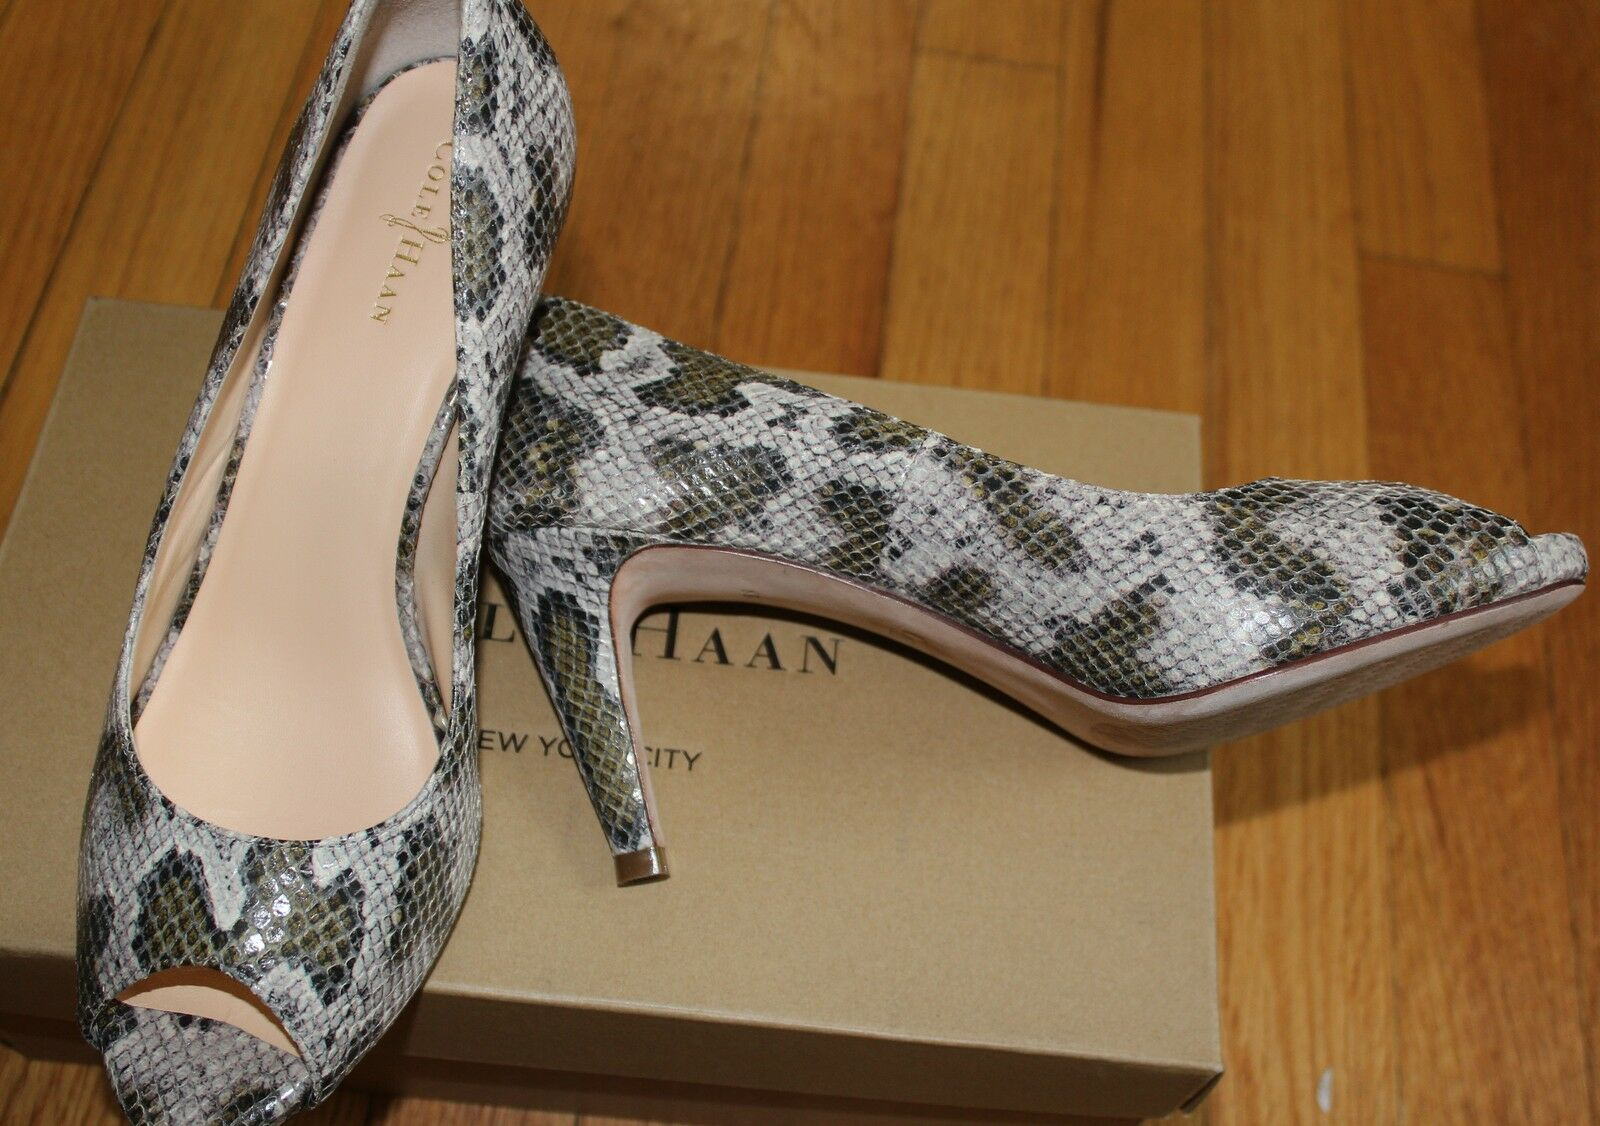 208 208 208 COLEHAAN SNAKE PRINT MARGOT OPEN TOE PUMP SZ 8B 20dc9d